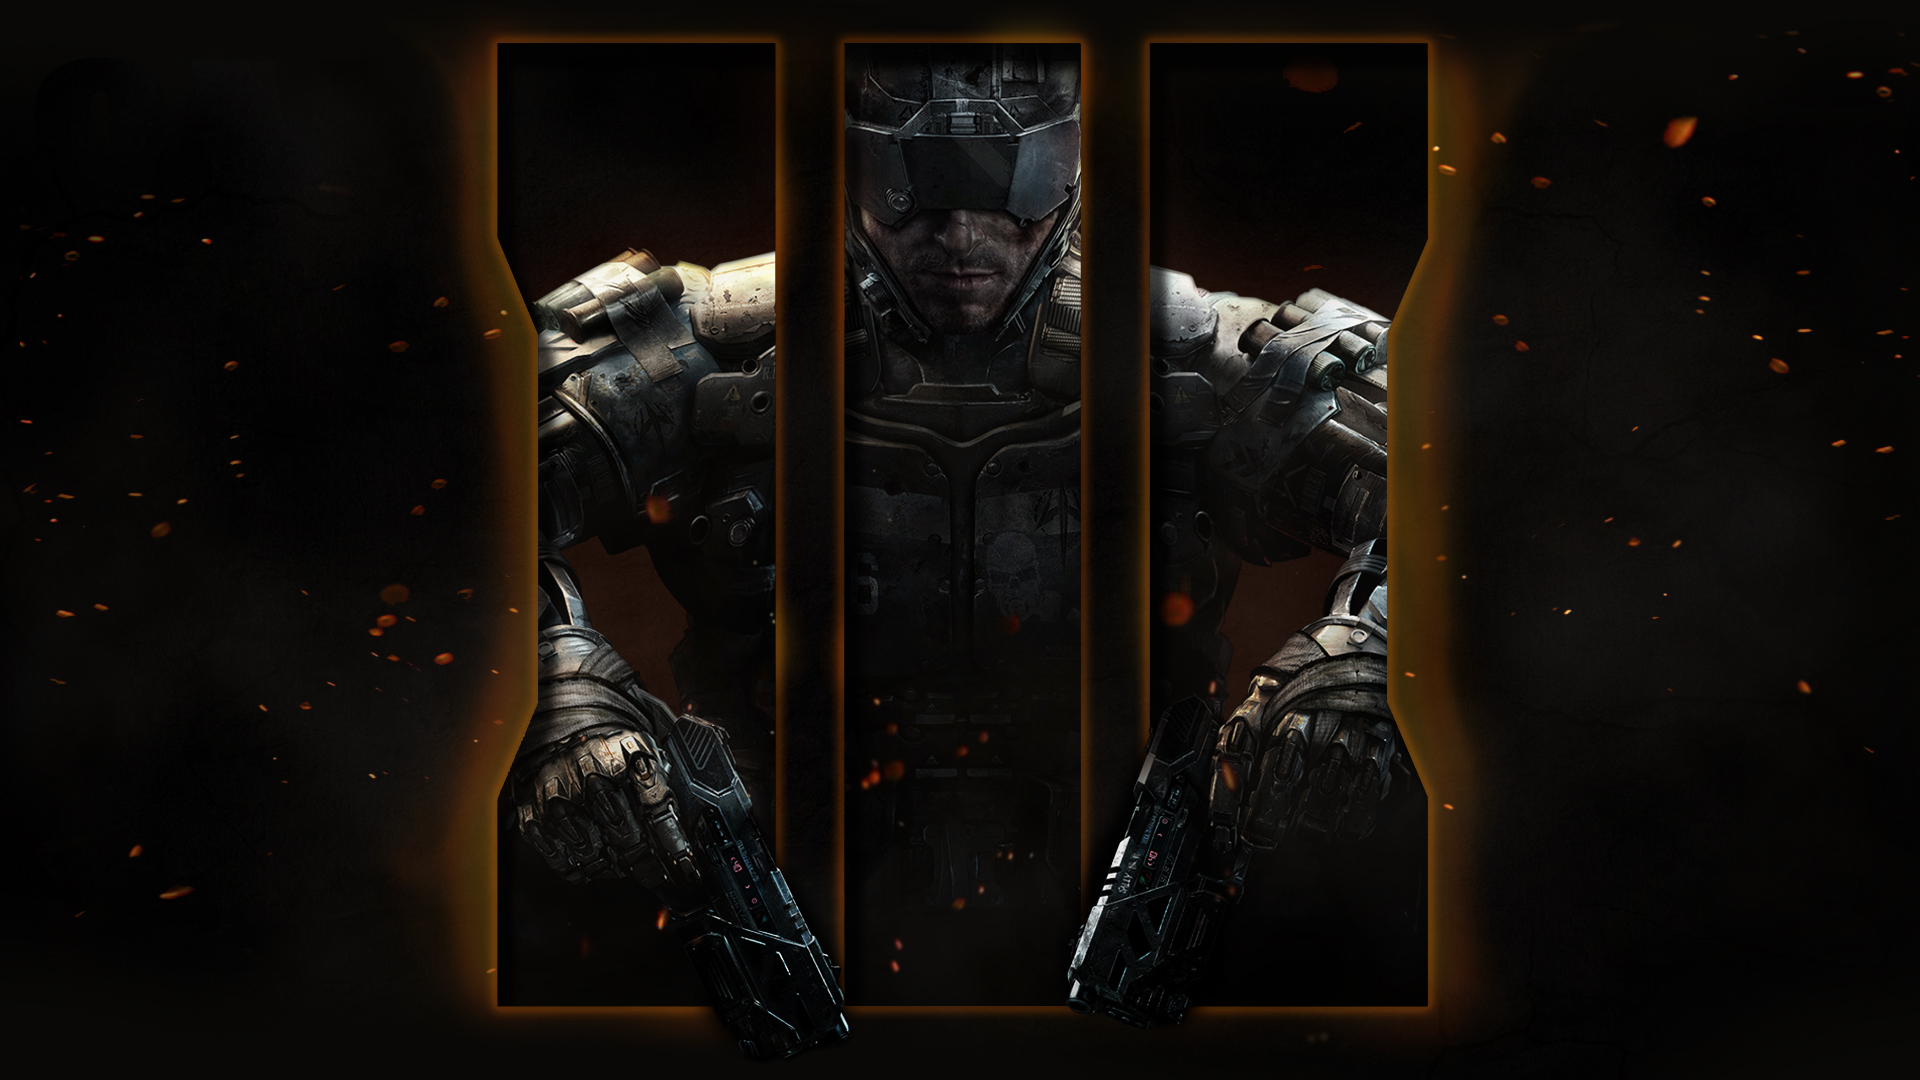 Call of Duty Black Ops 3 Wallpaper 04 by Toby Affenbude 1920x1080